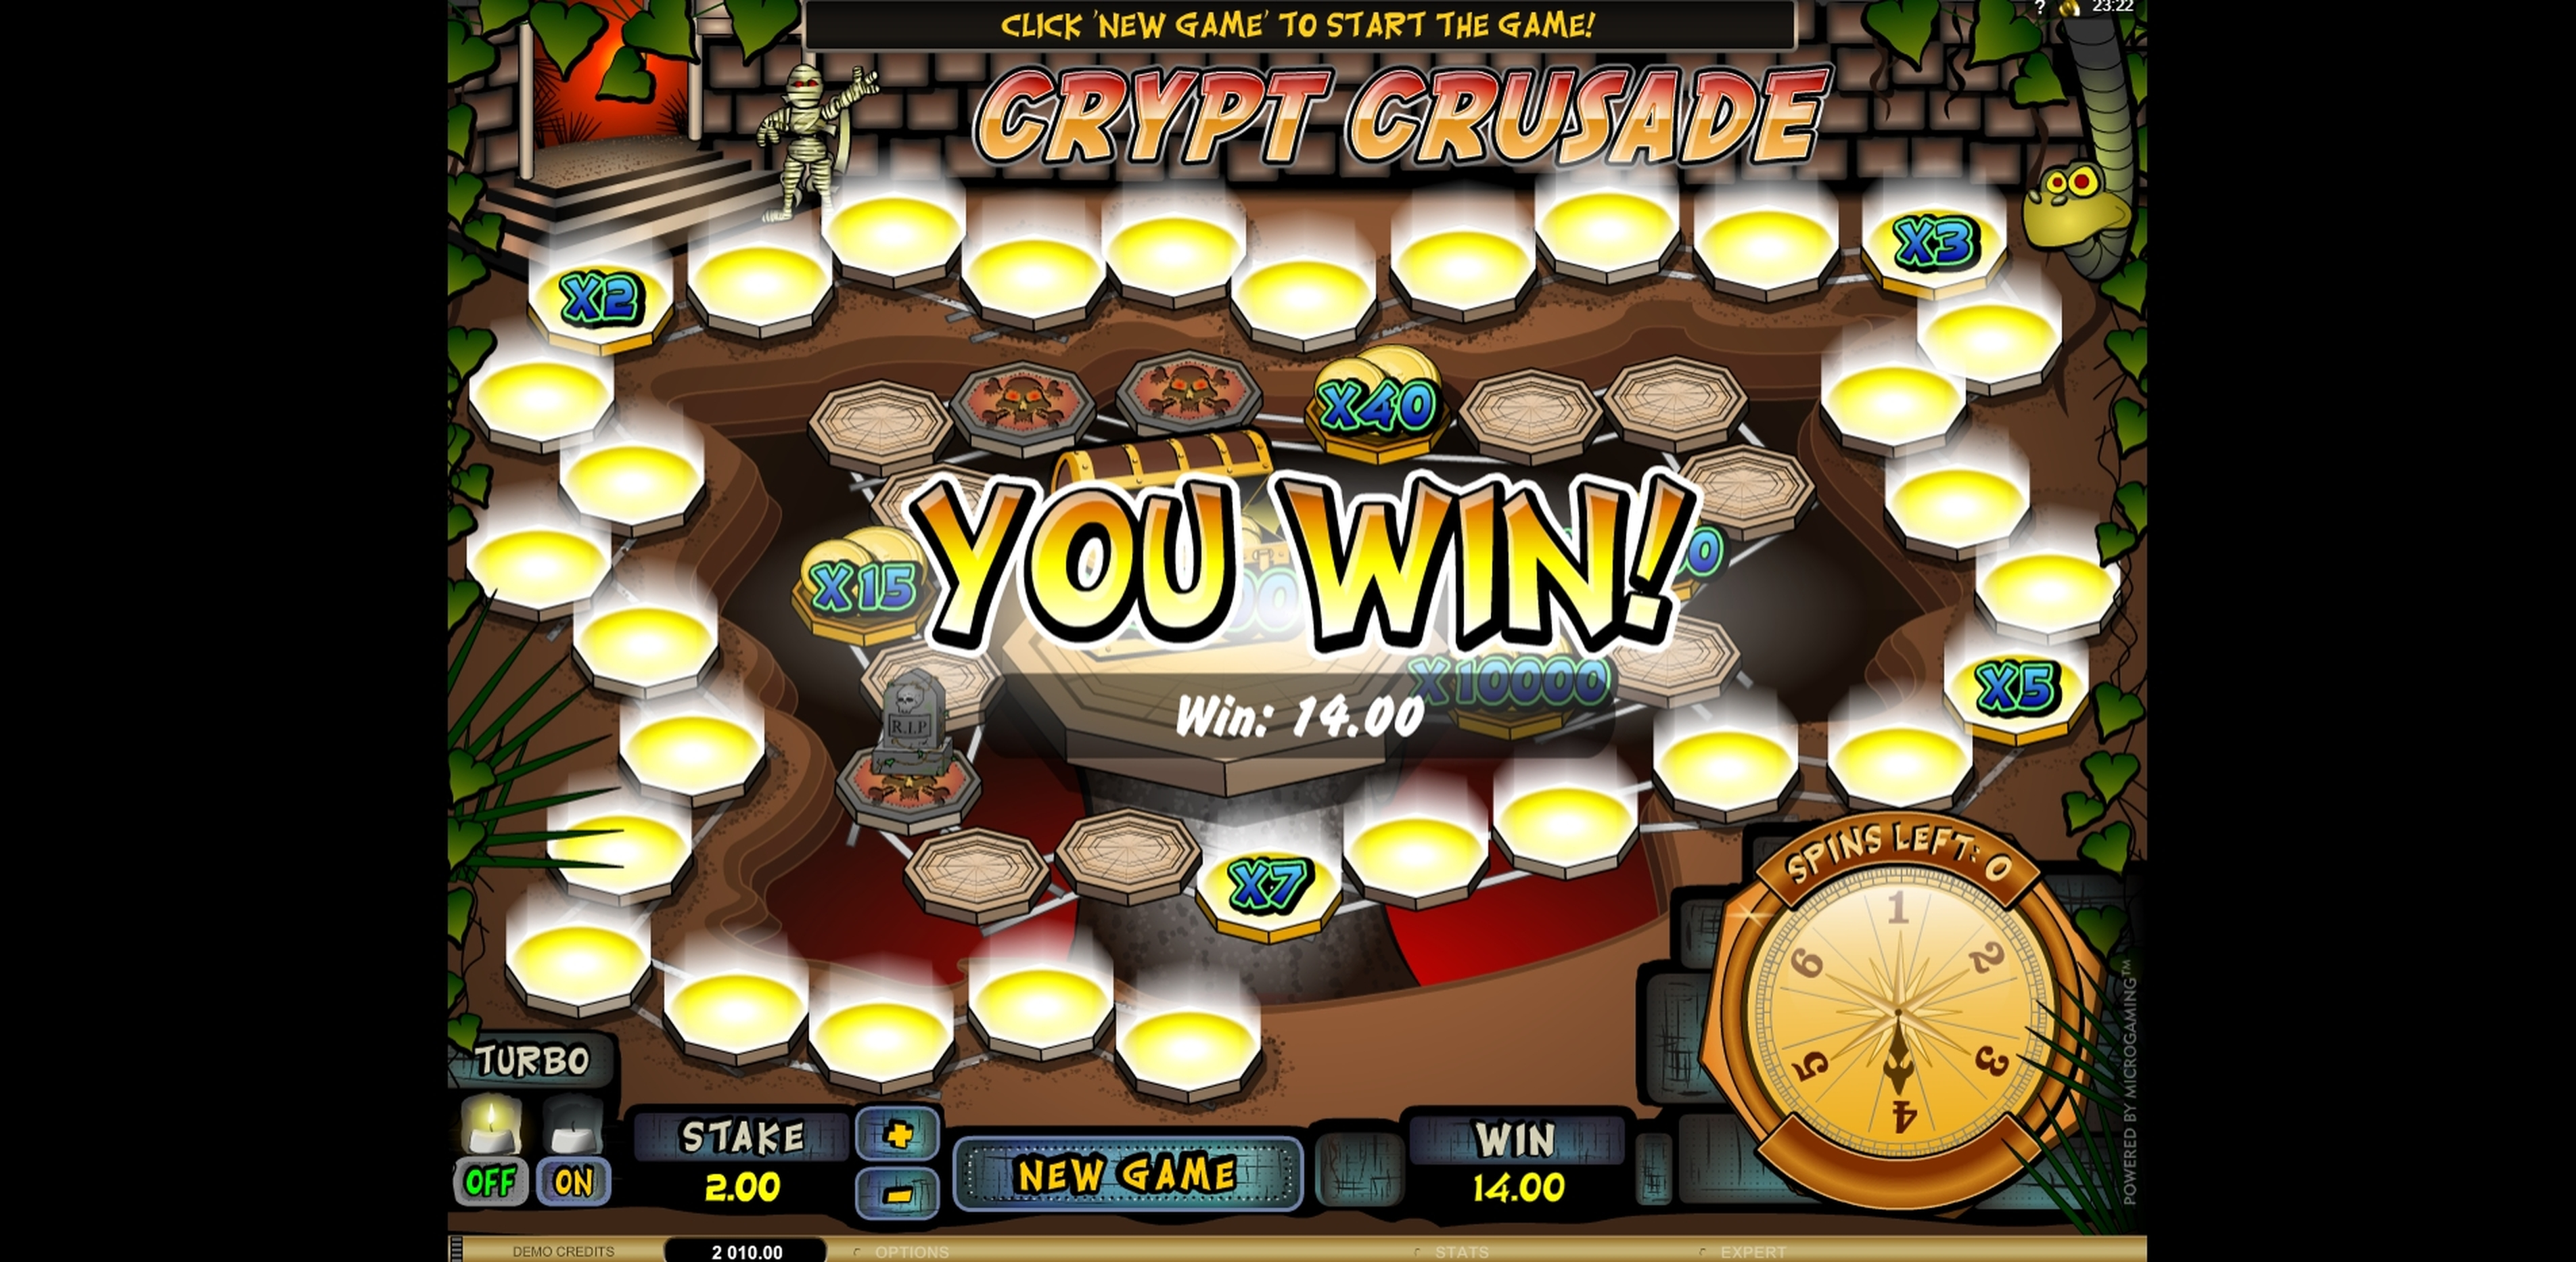 Win Money in Crypt Crusade Free Slot Game by Microgaming